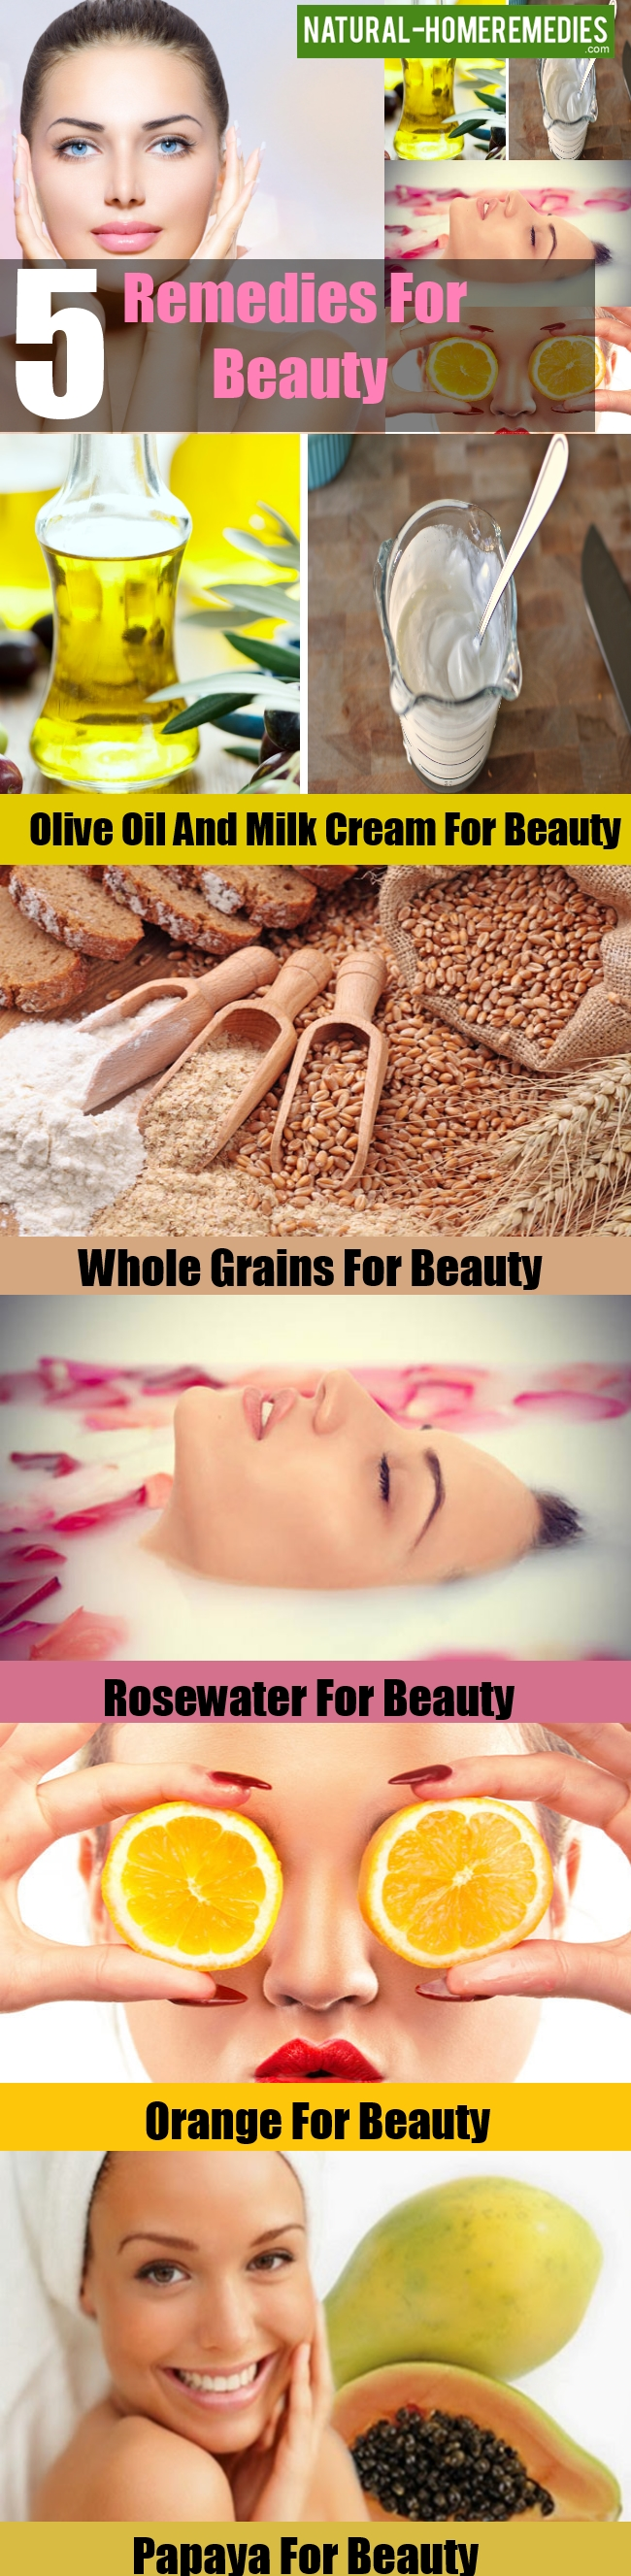 Remedies For Beauty